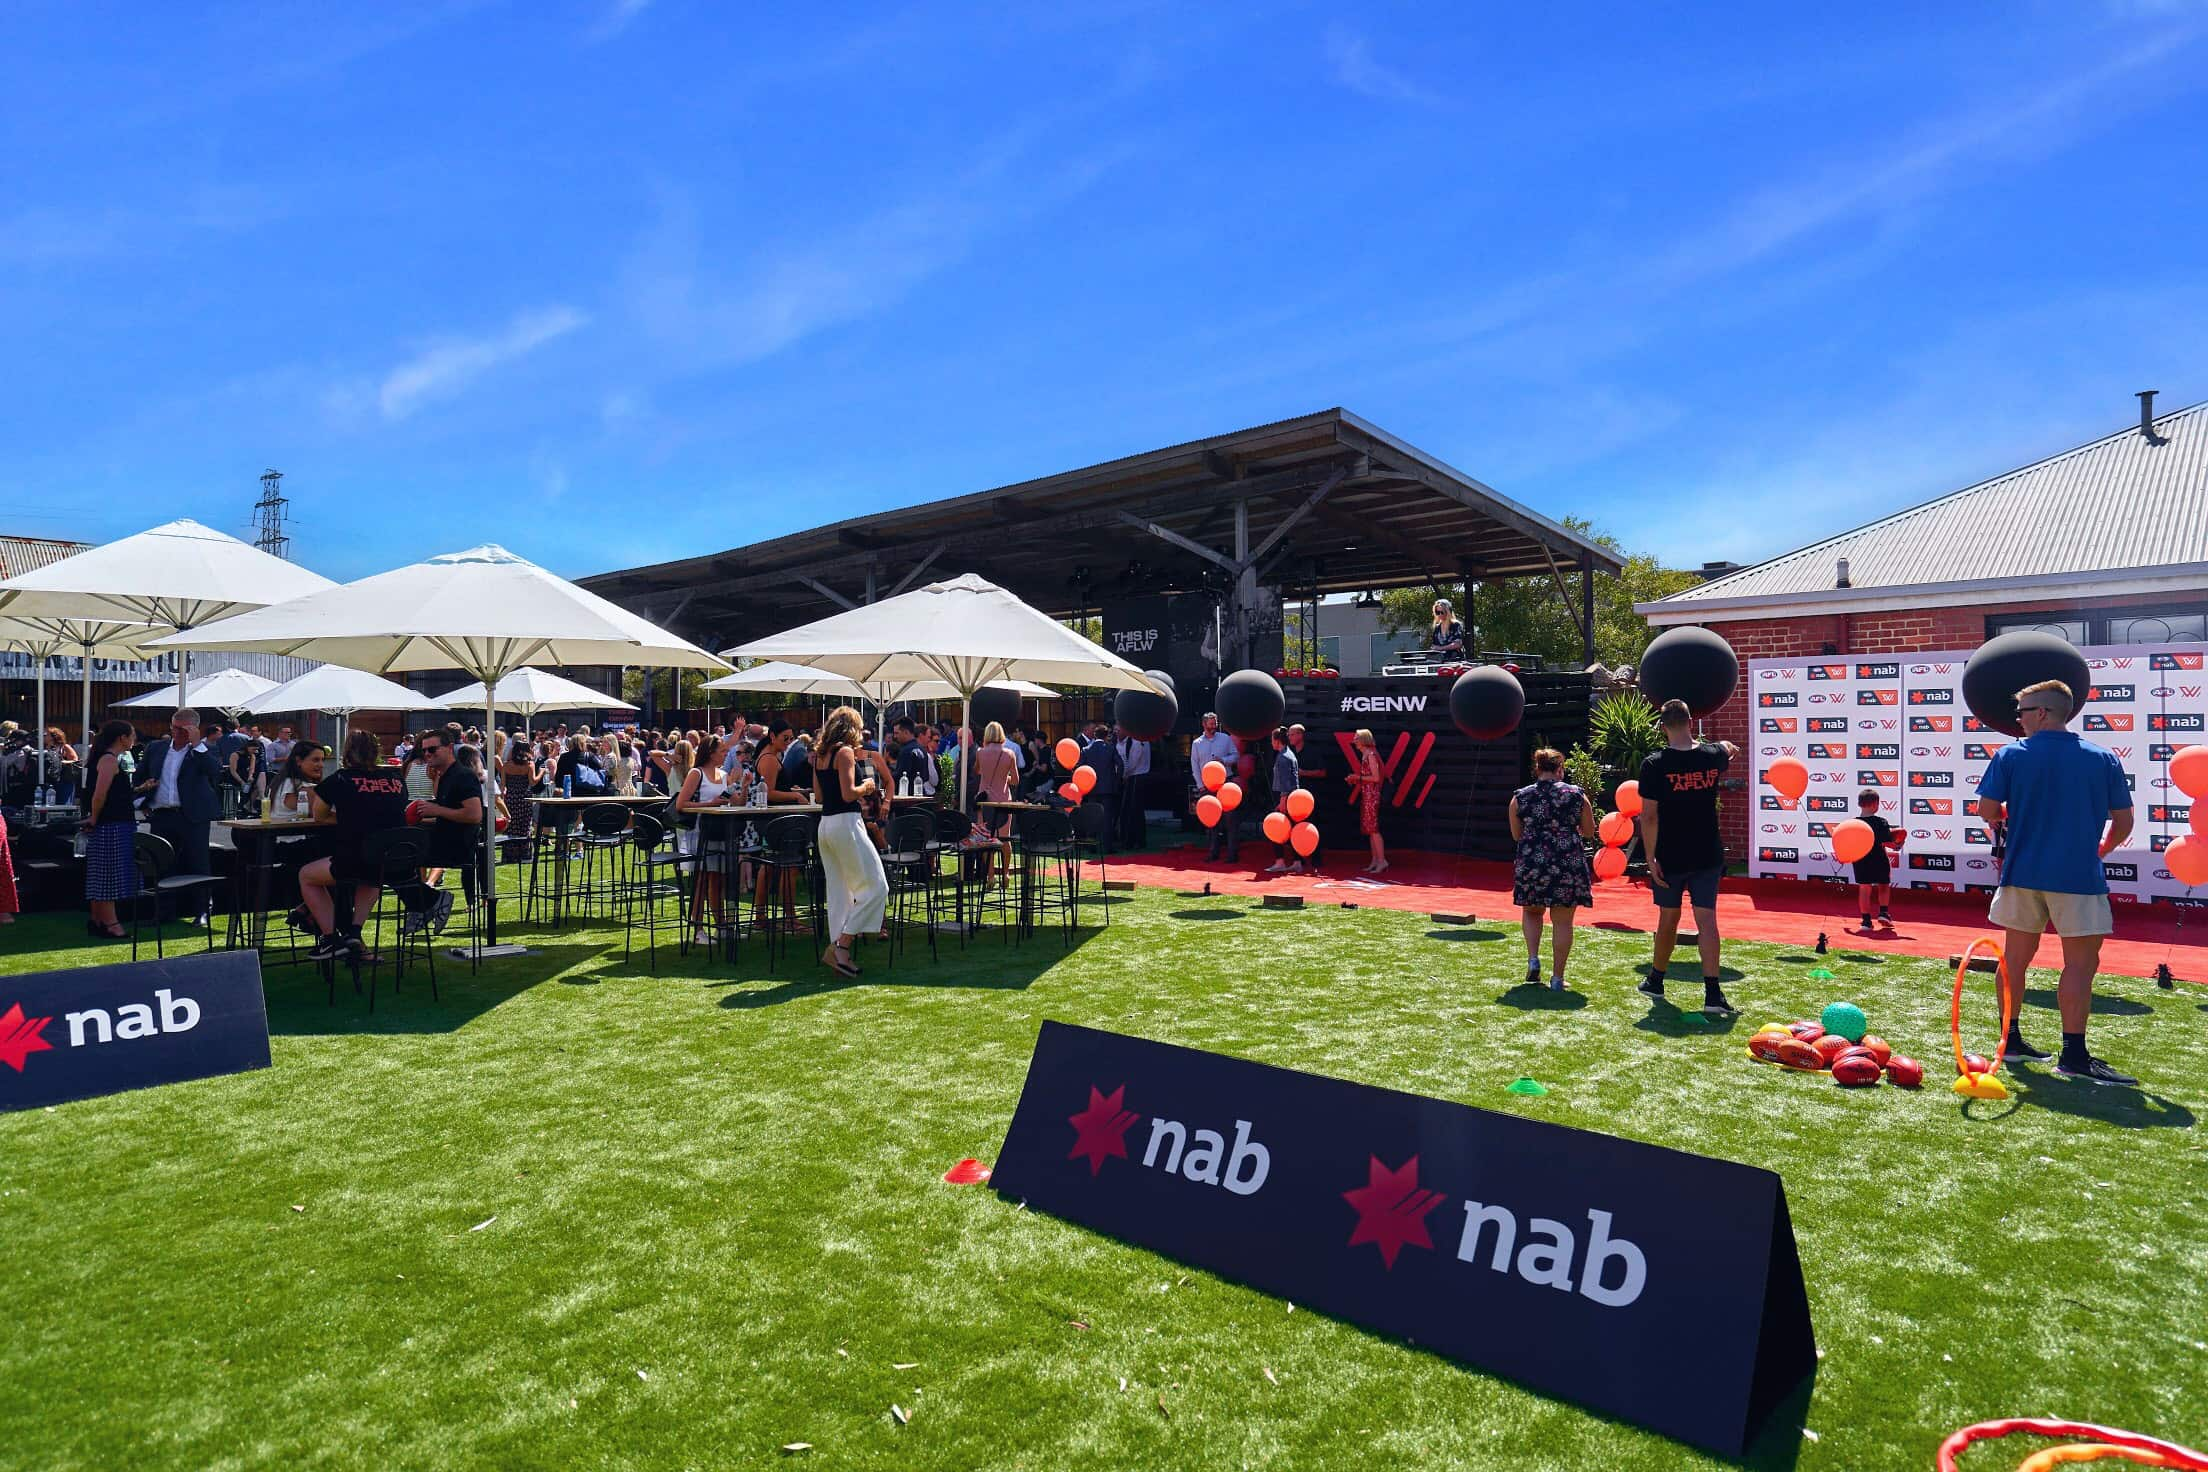 the-timber-yard-melbourne-event-space-nab-the-yard